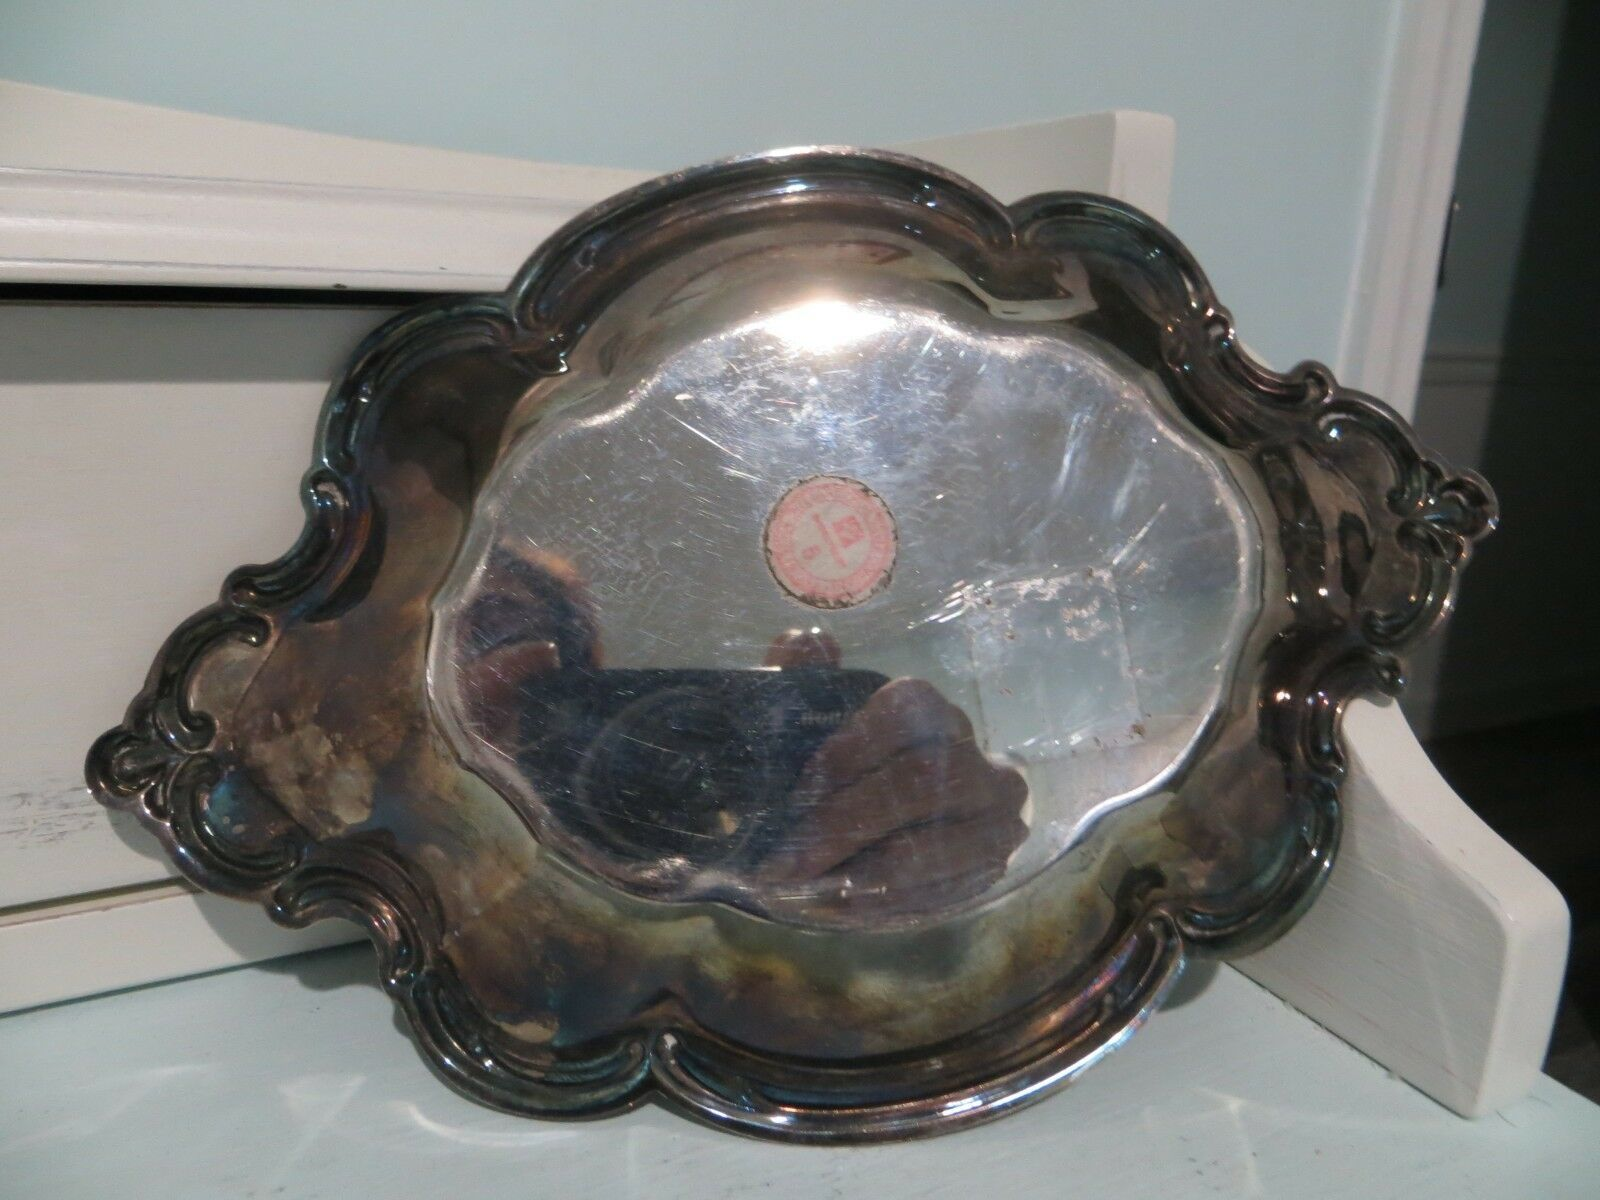 Vintage small silver nut/candy dish made by The International Silver Company image 4